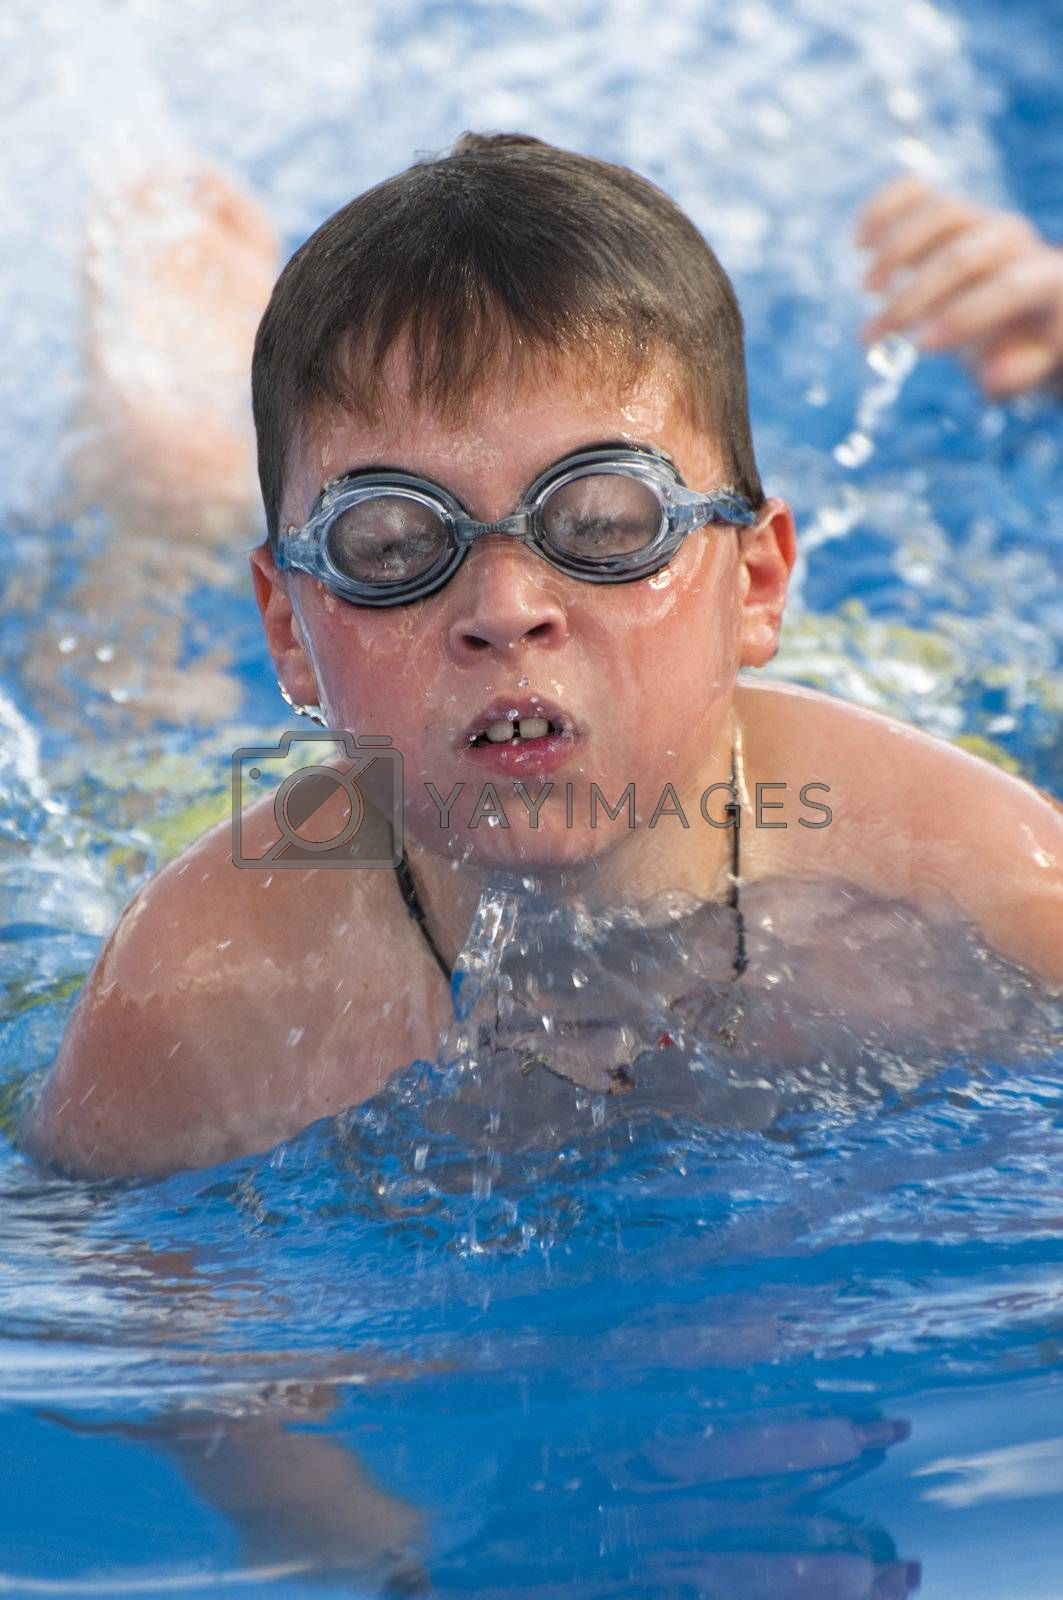 Picture of a boy on a swimming pool